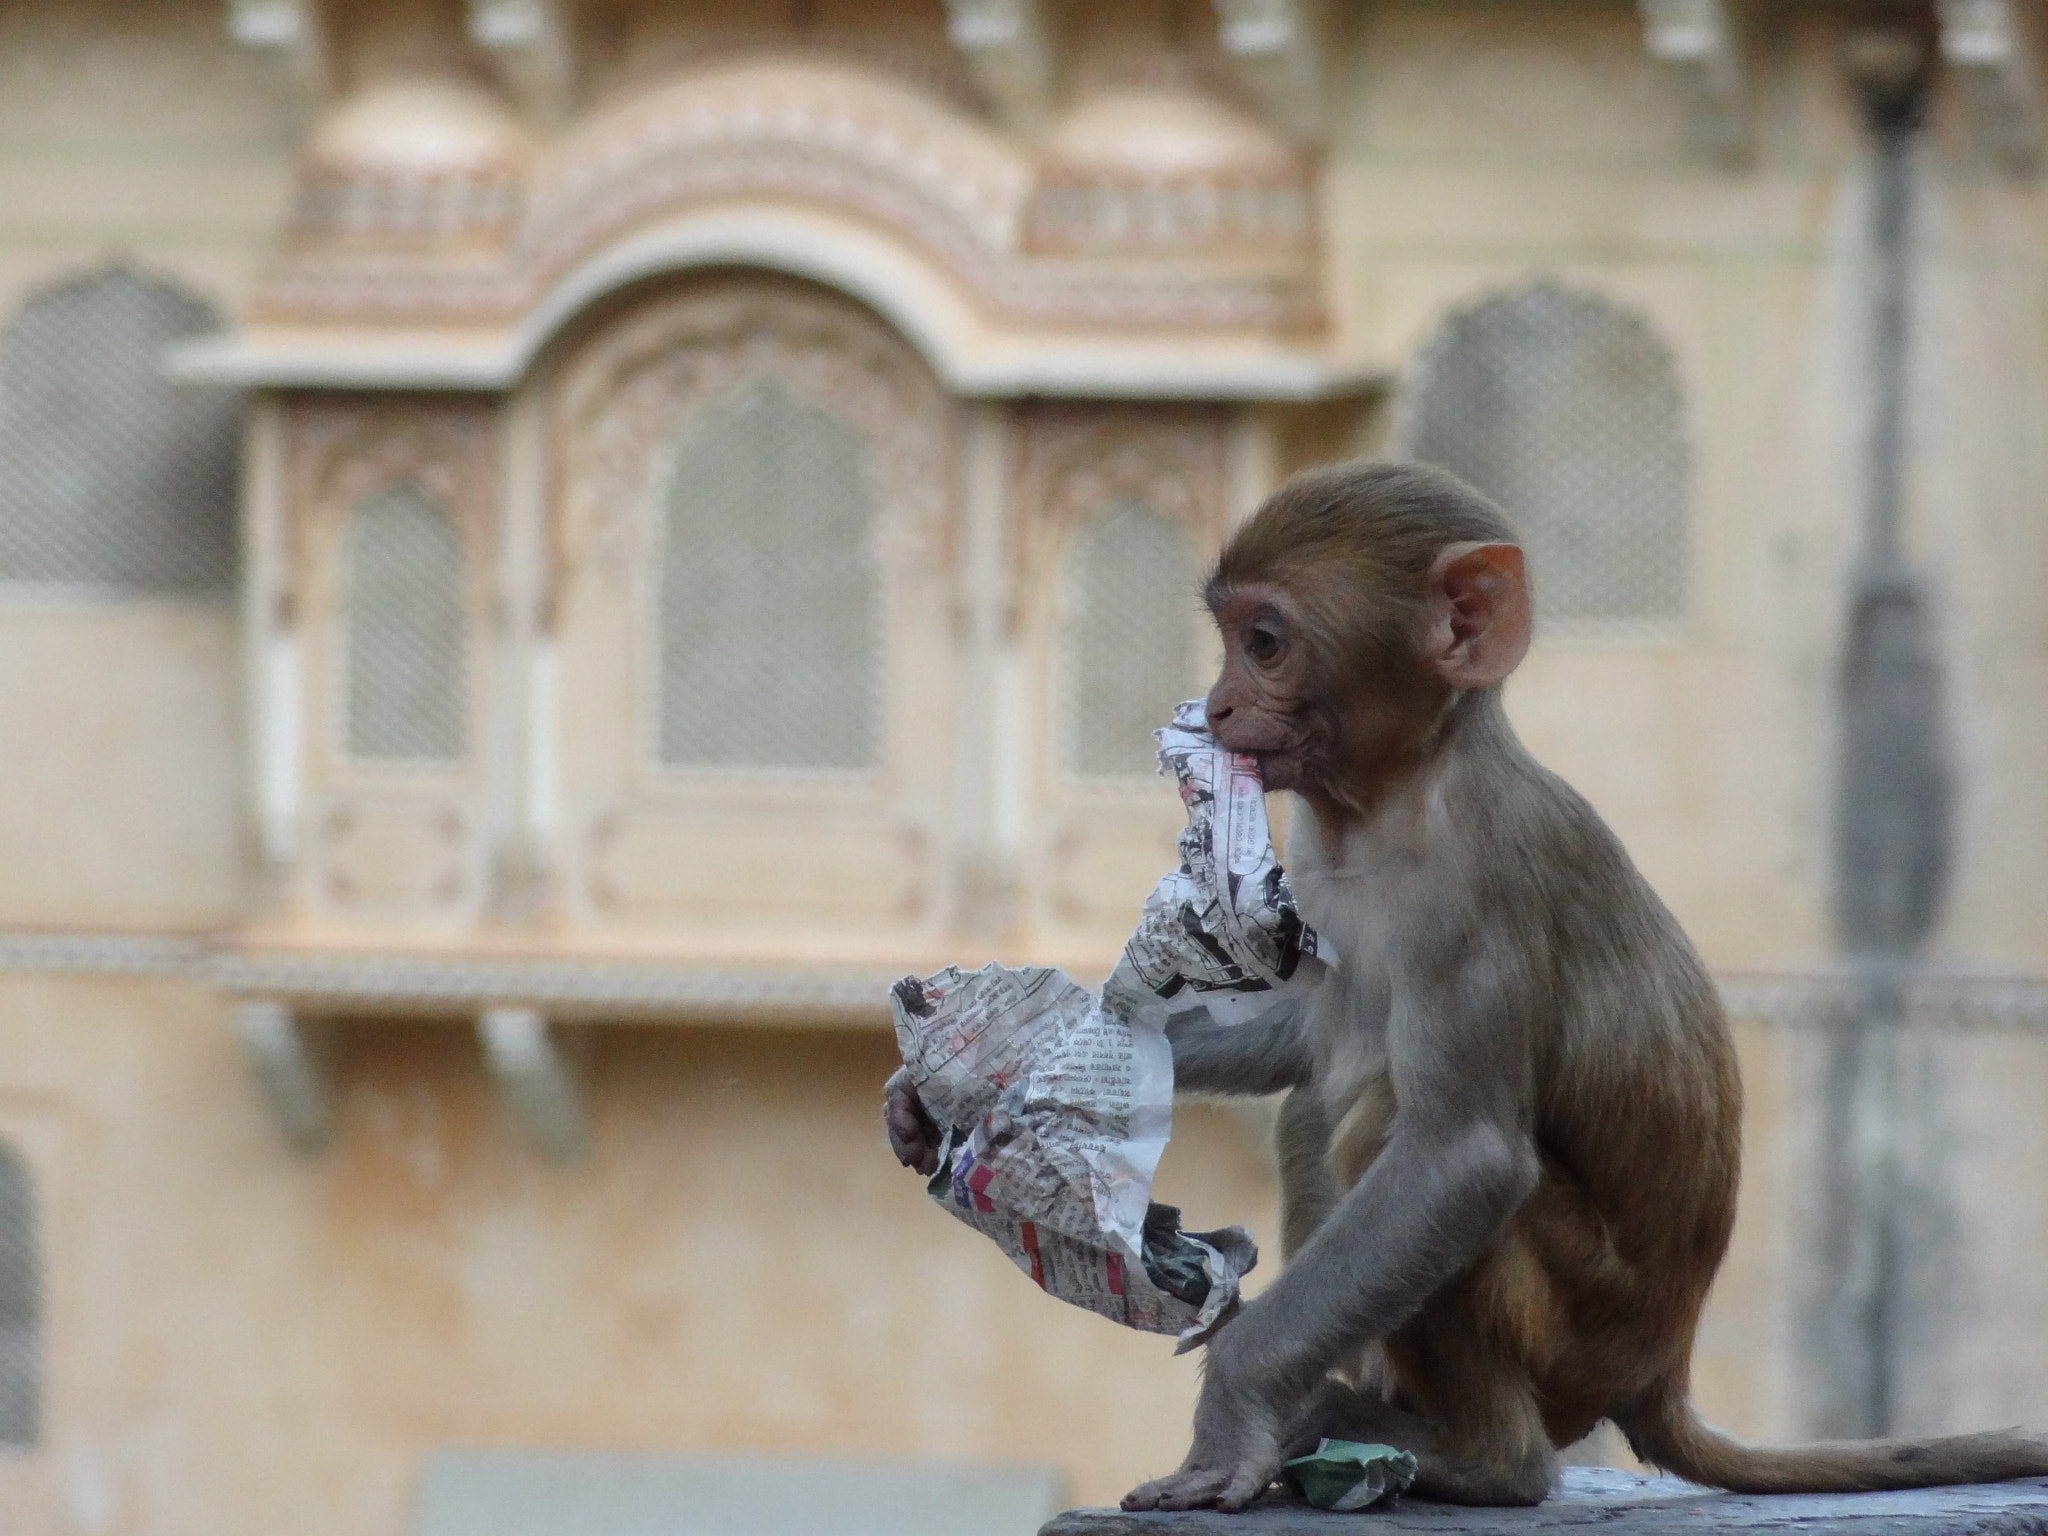 Photograph Monkey baby eating newspaper, Galta Kund, Rajasthan, India by Gio TheDrifter on 500px